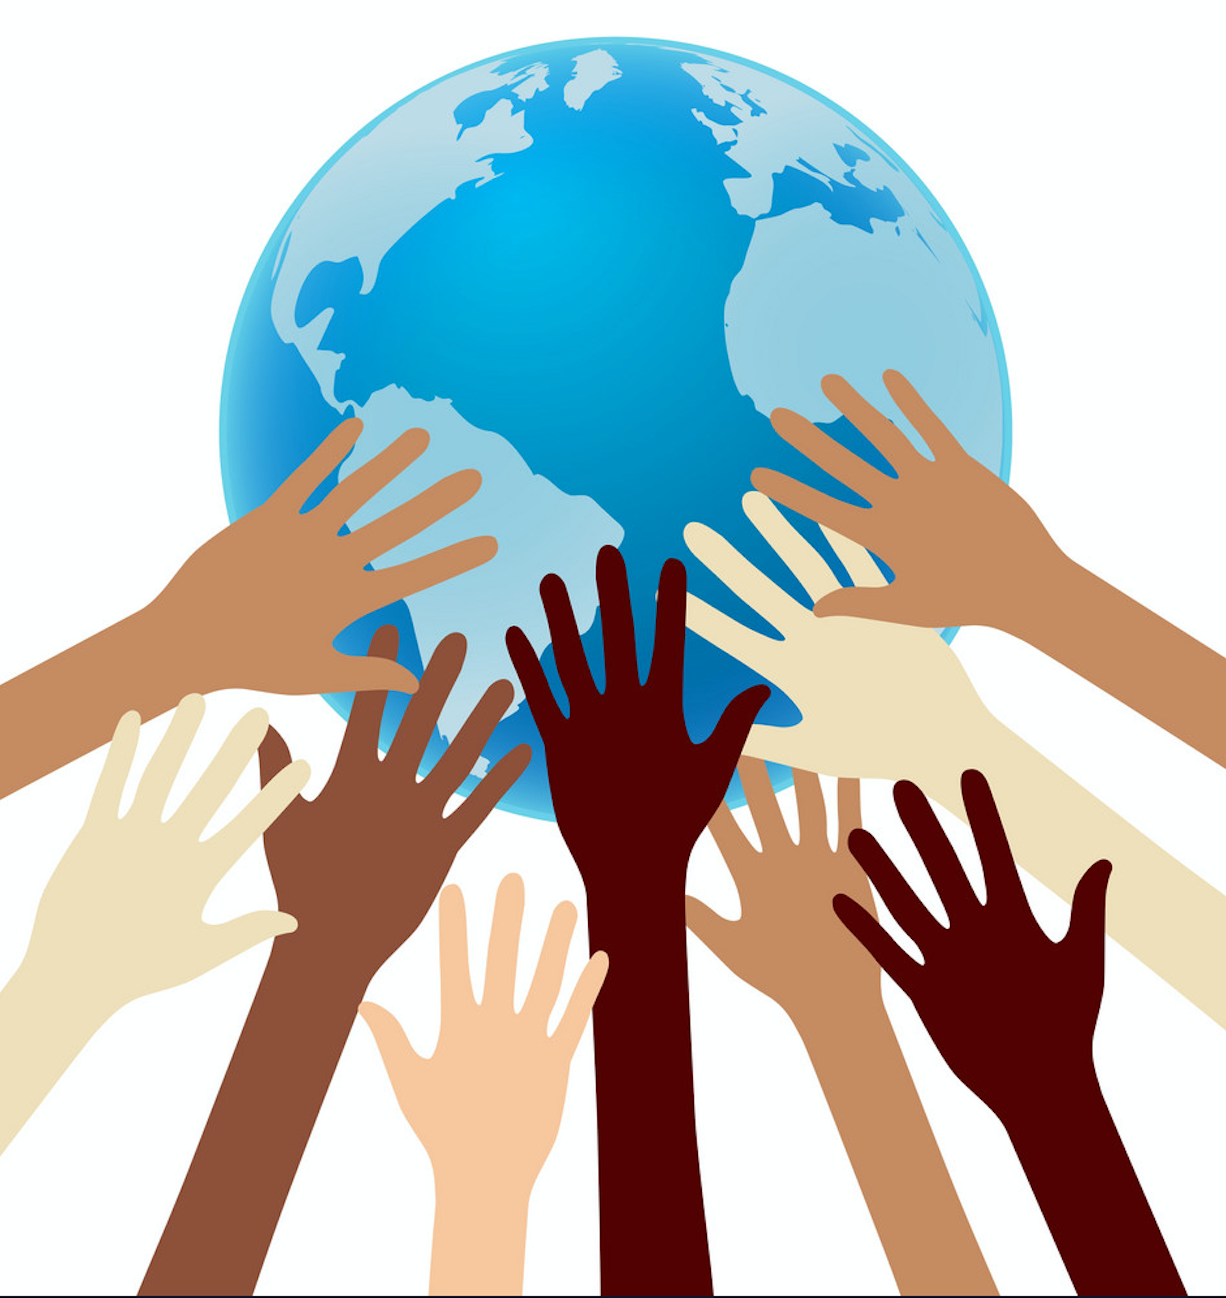 Educating Toward An Anti-Racist World: Global Competence and Systemic Racism image